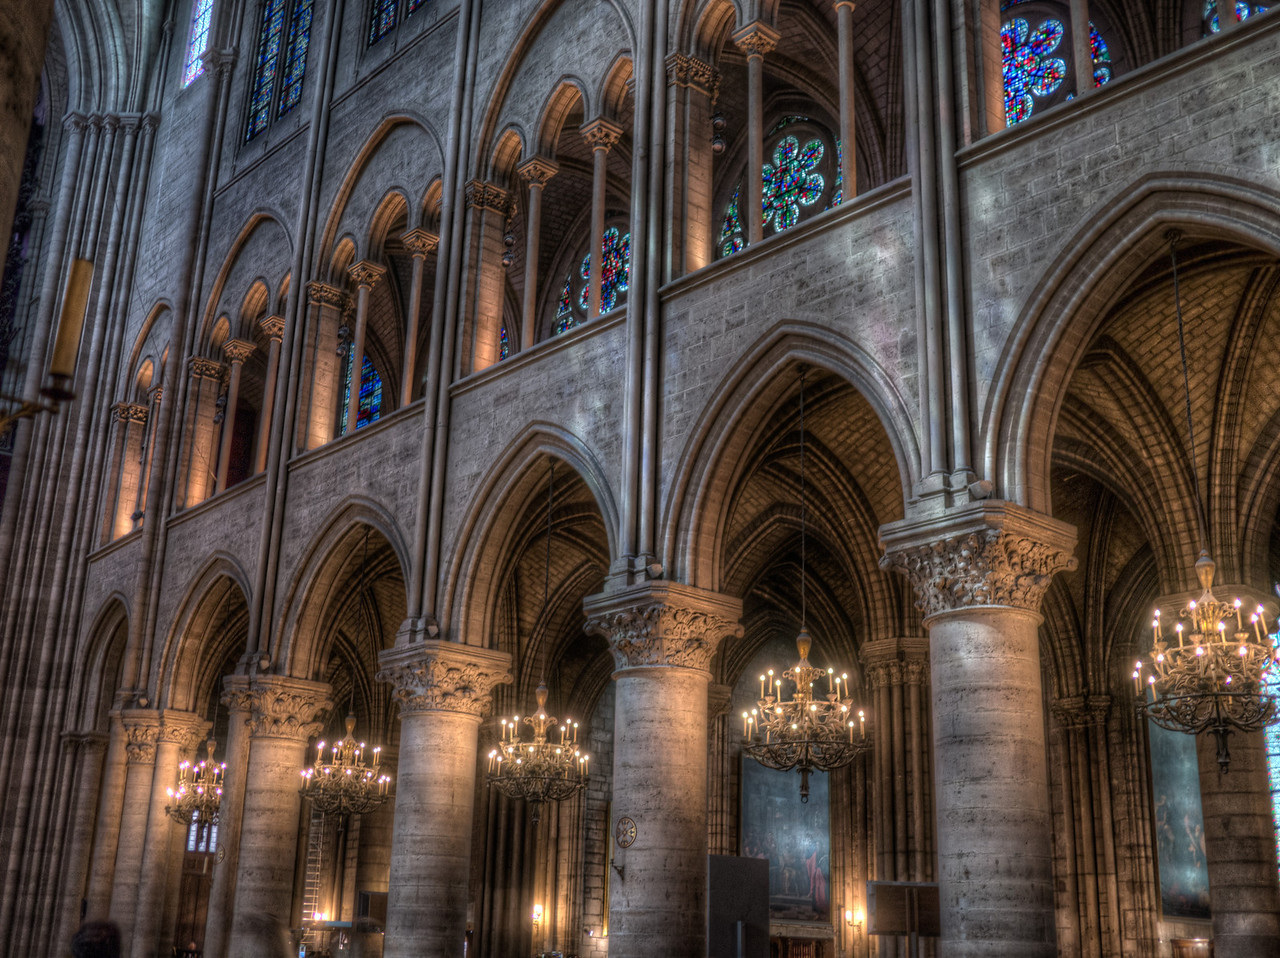 Arches in Notre Dame